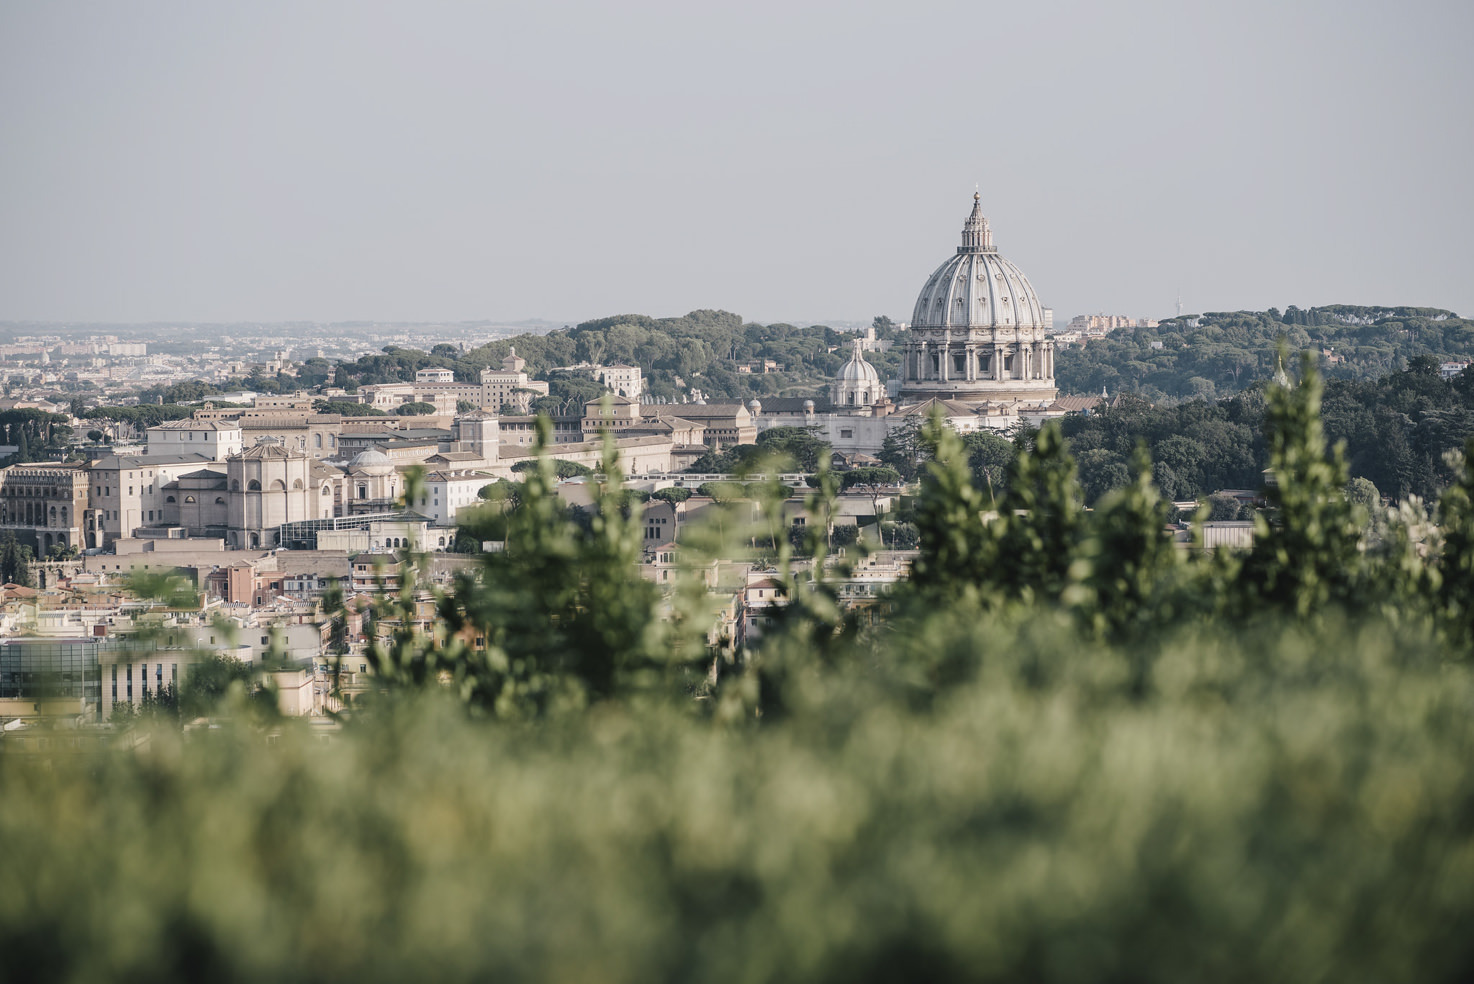 Panoramic view of the city of Rome from Villa Miani